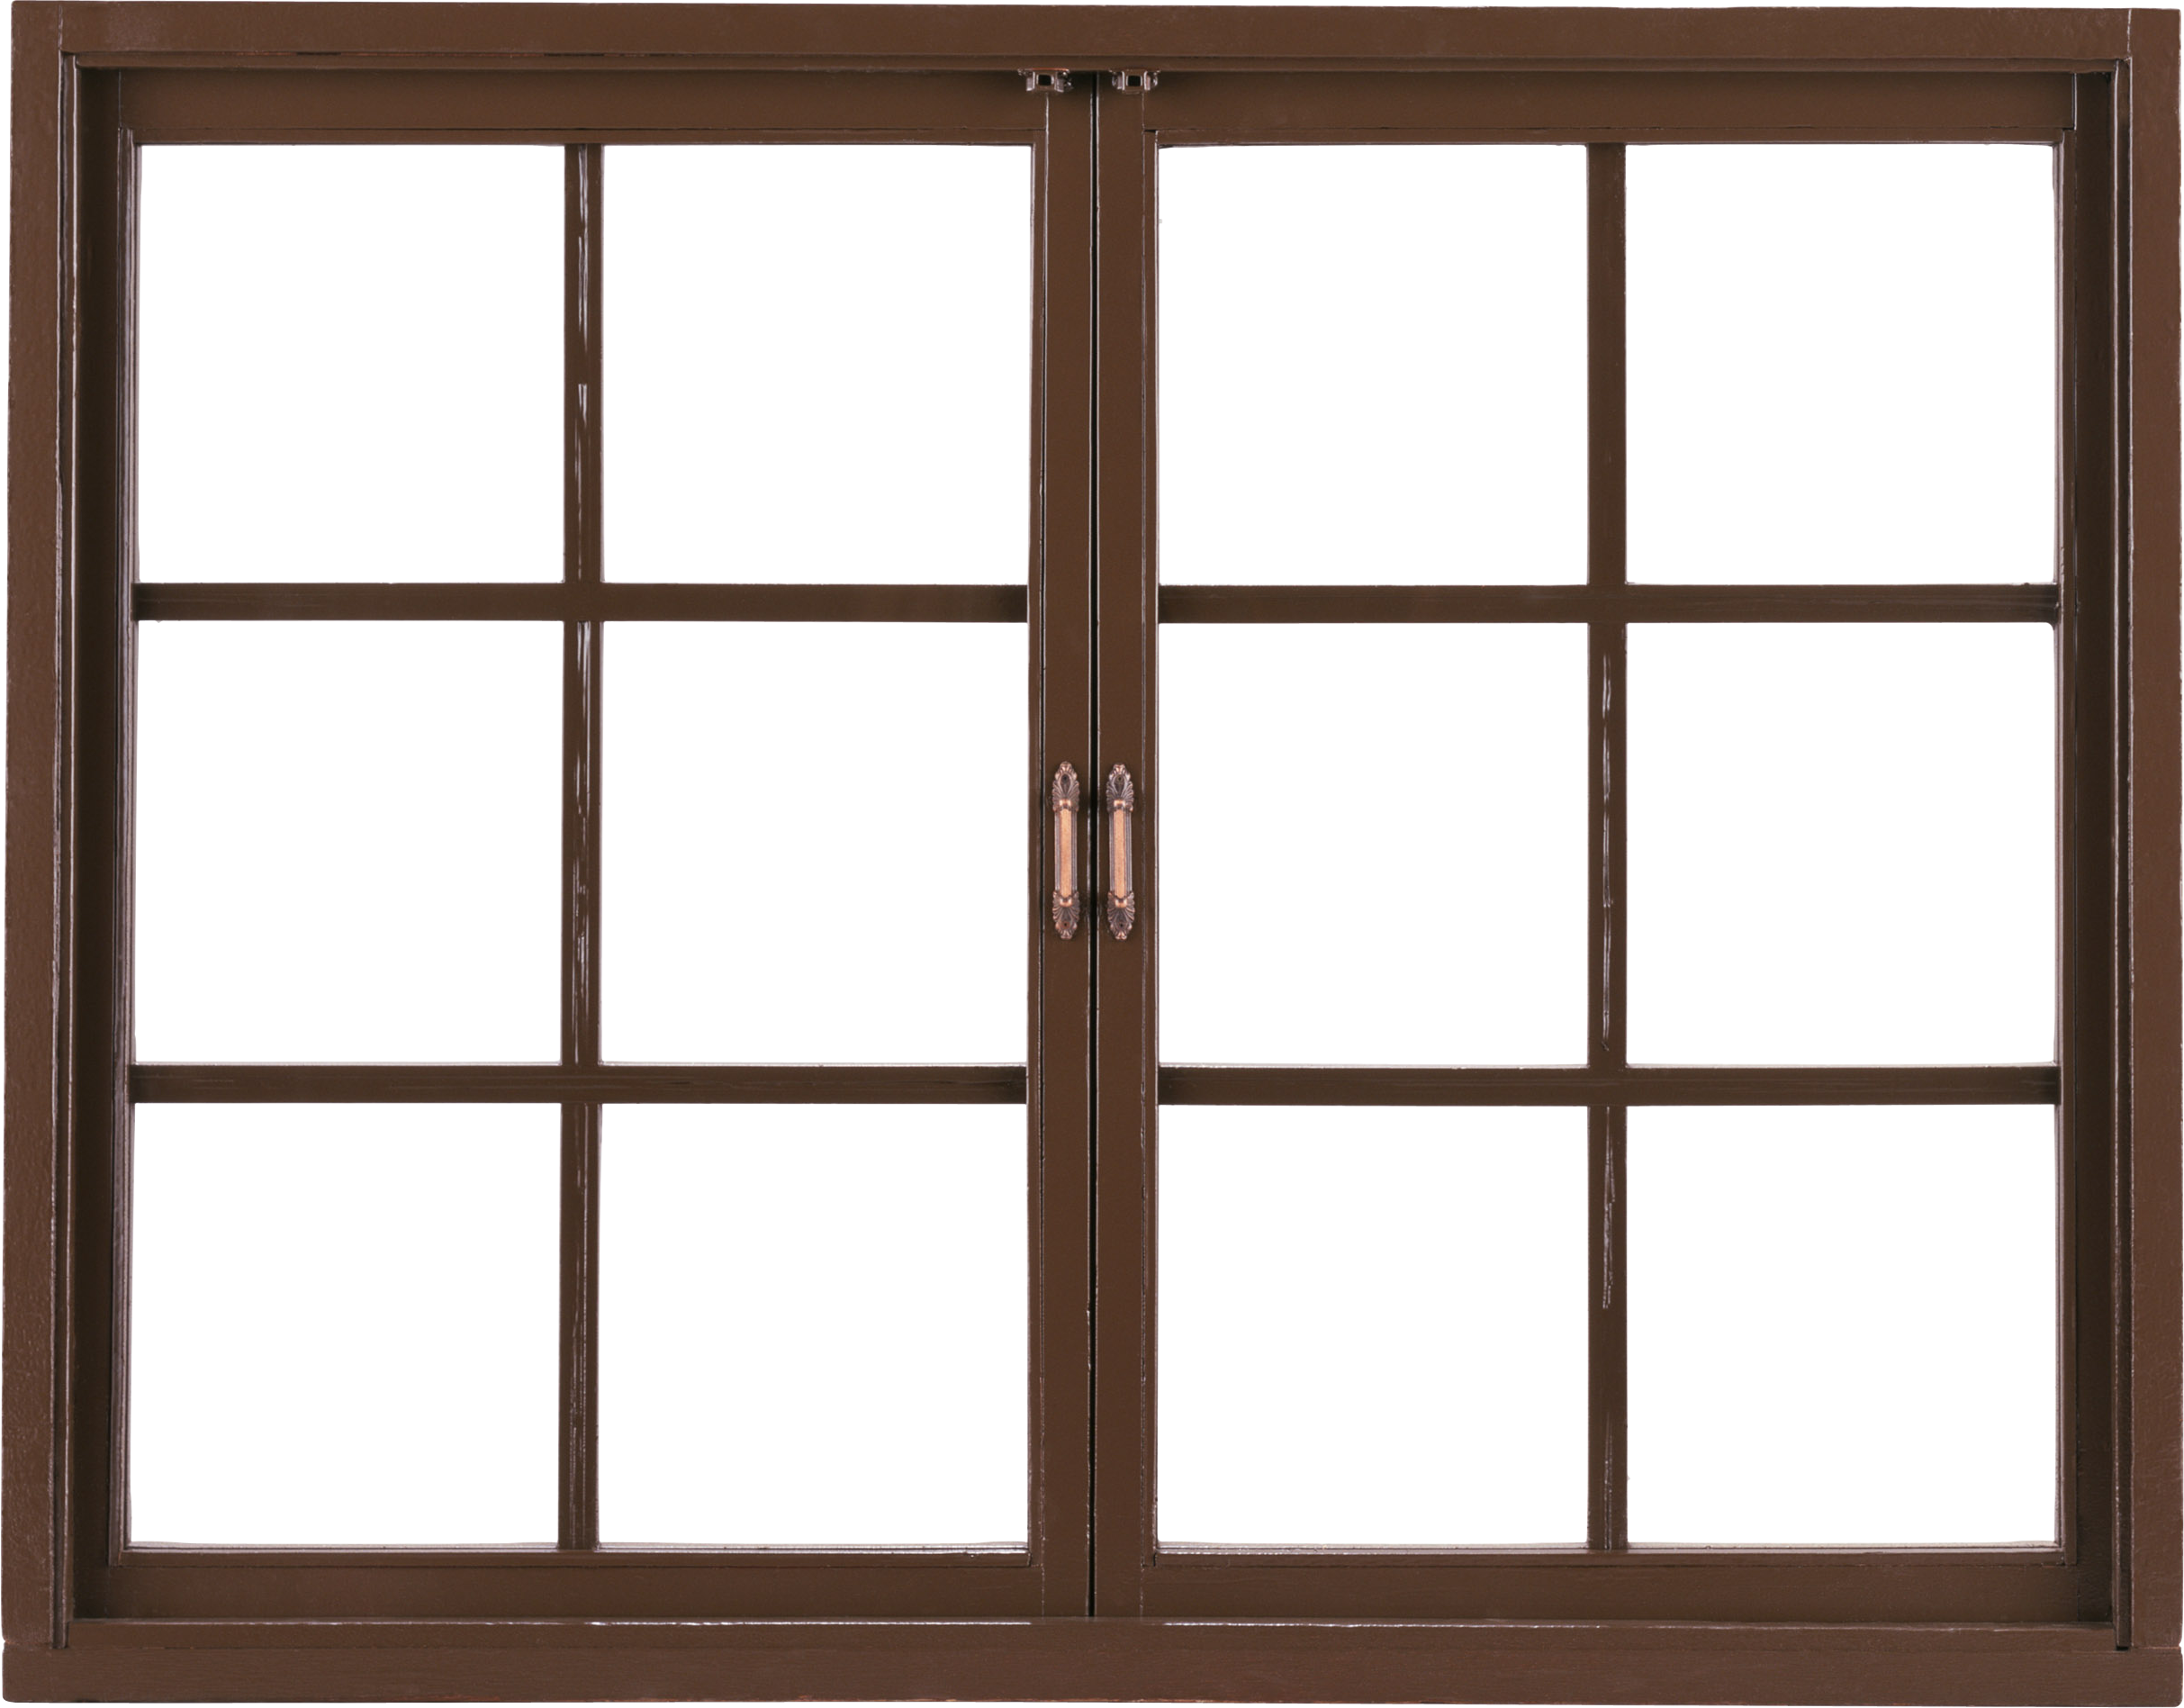 free clip art window frame - photo #18